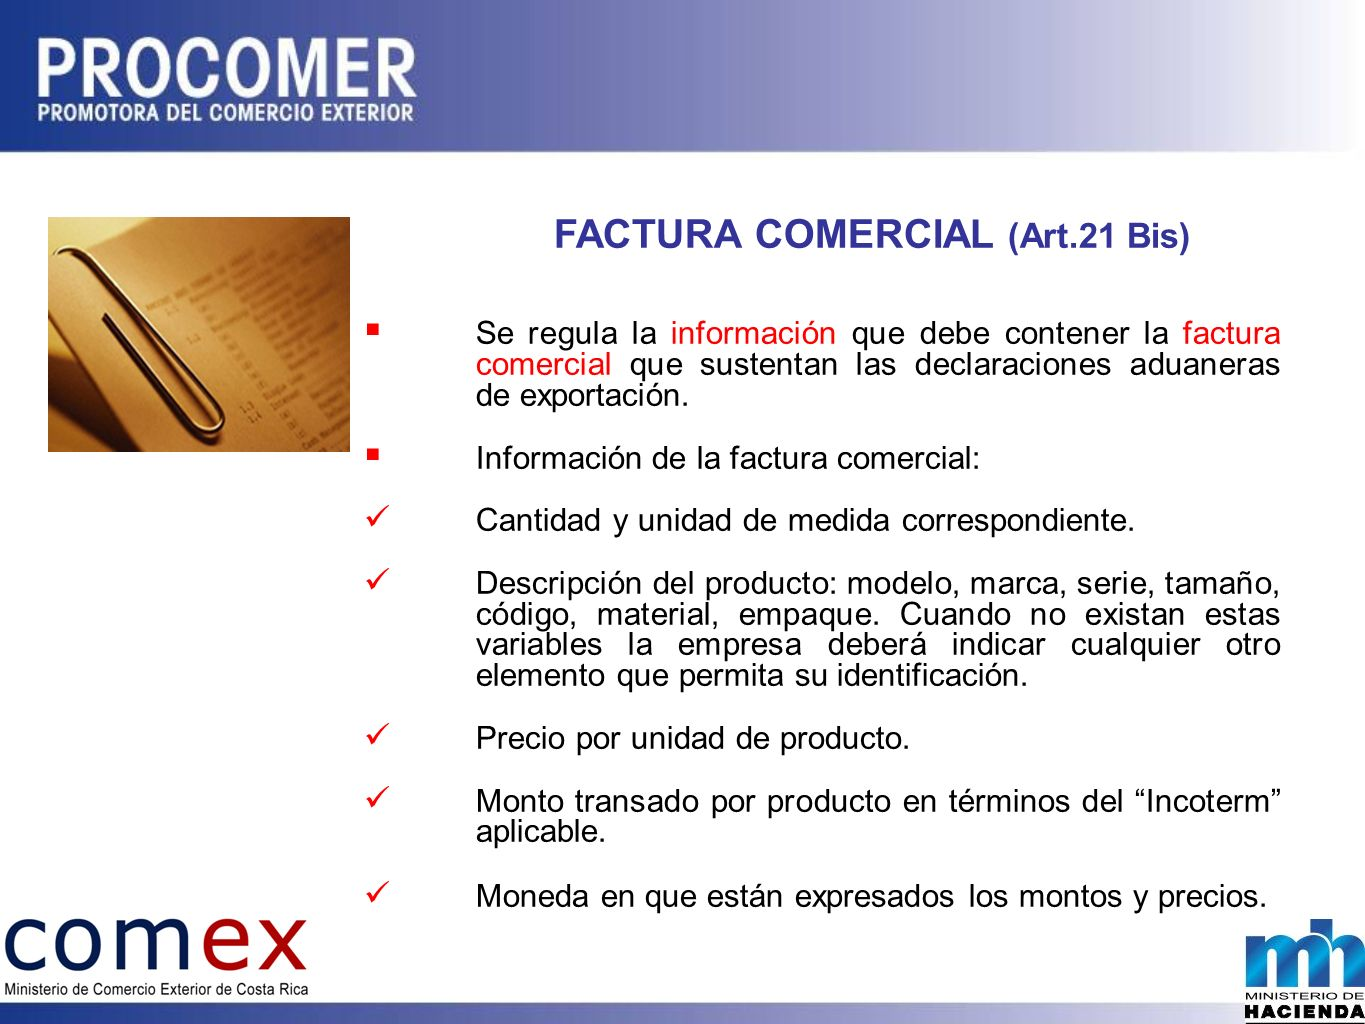 FACTURA COMERCIAL (Art.21 Bis)